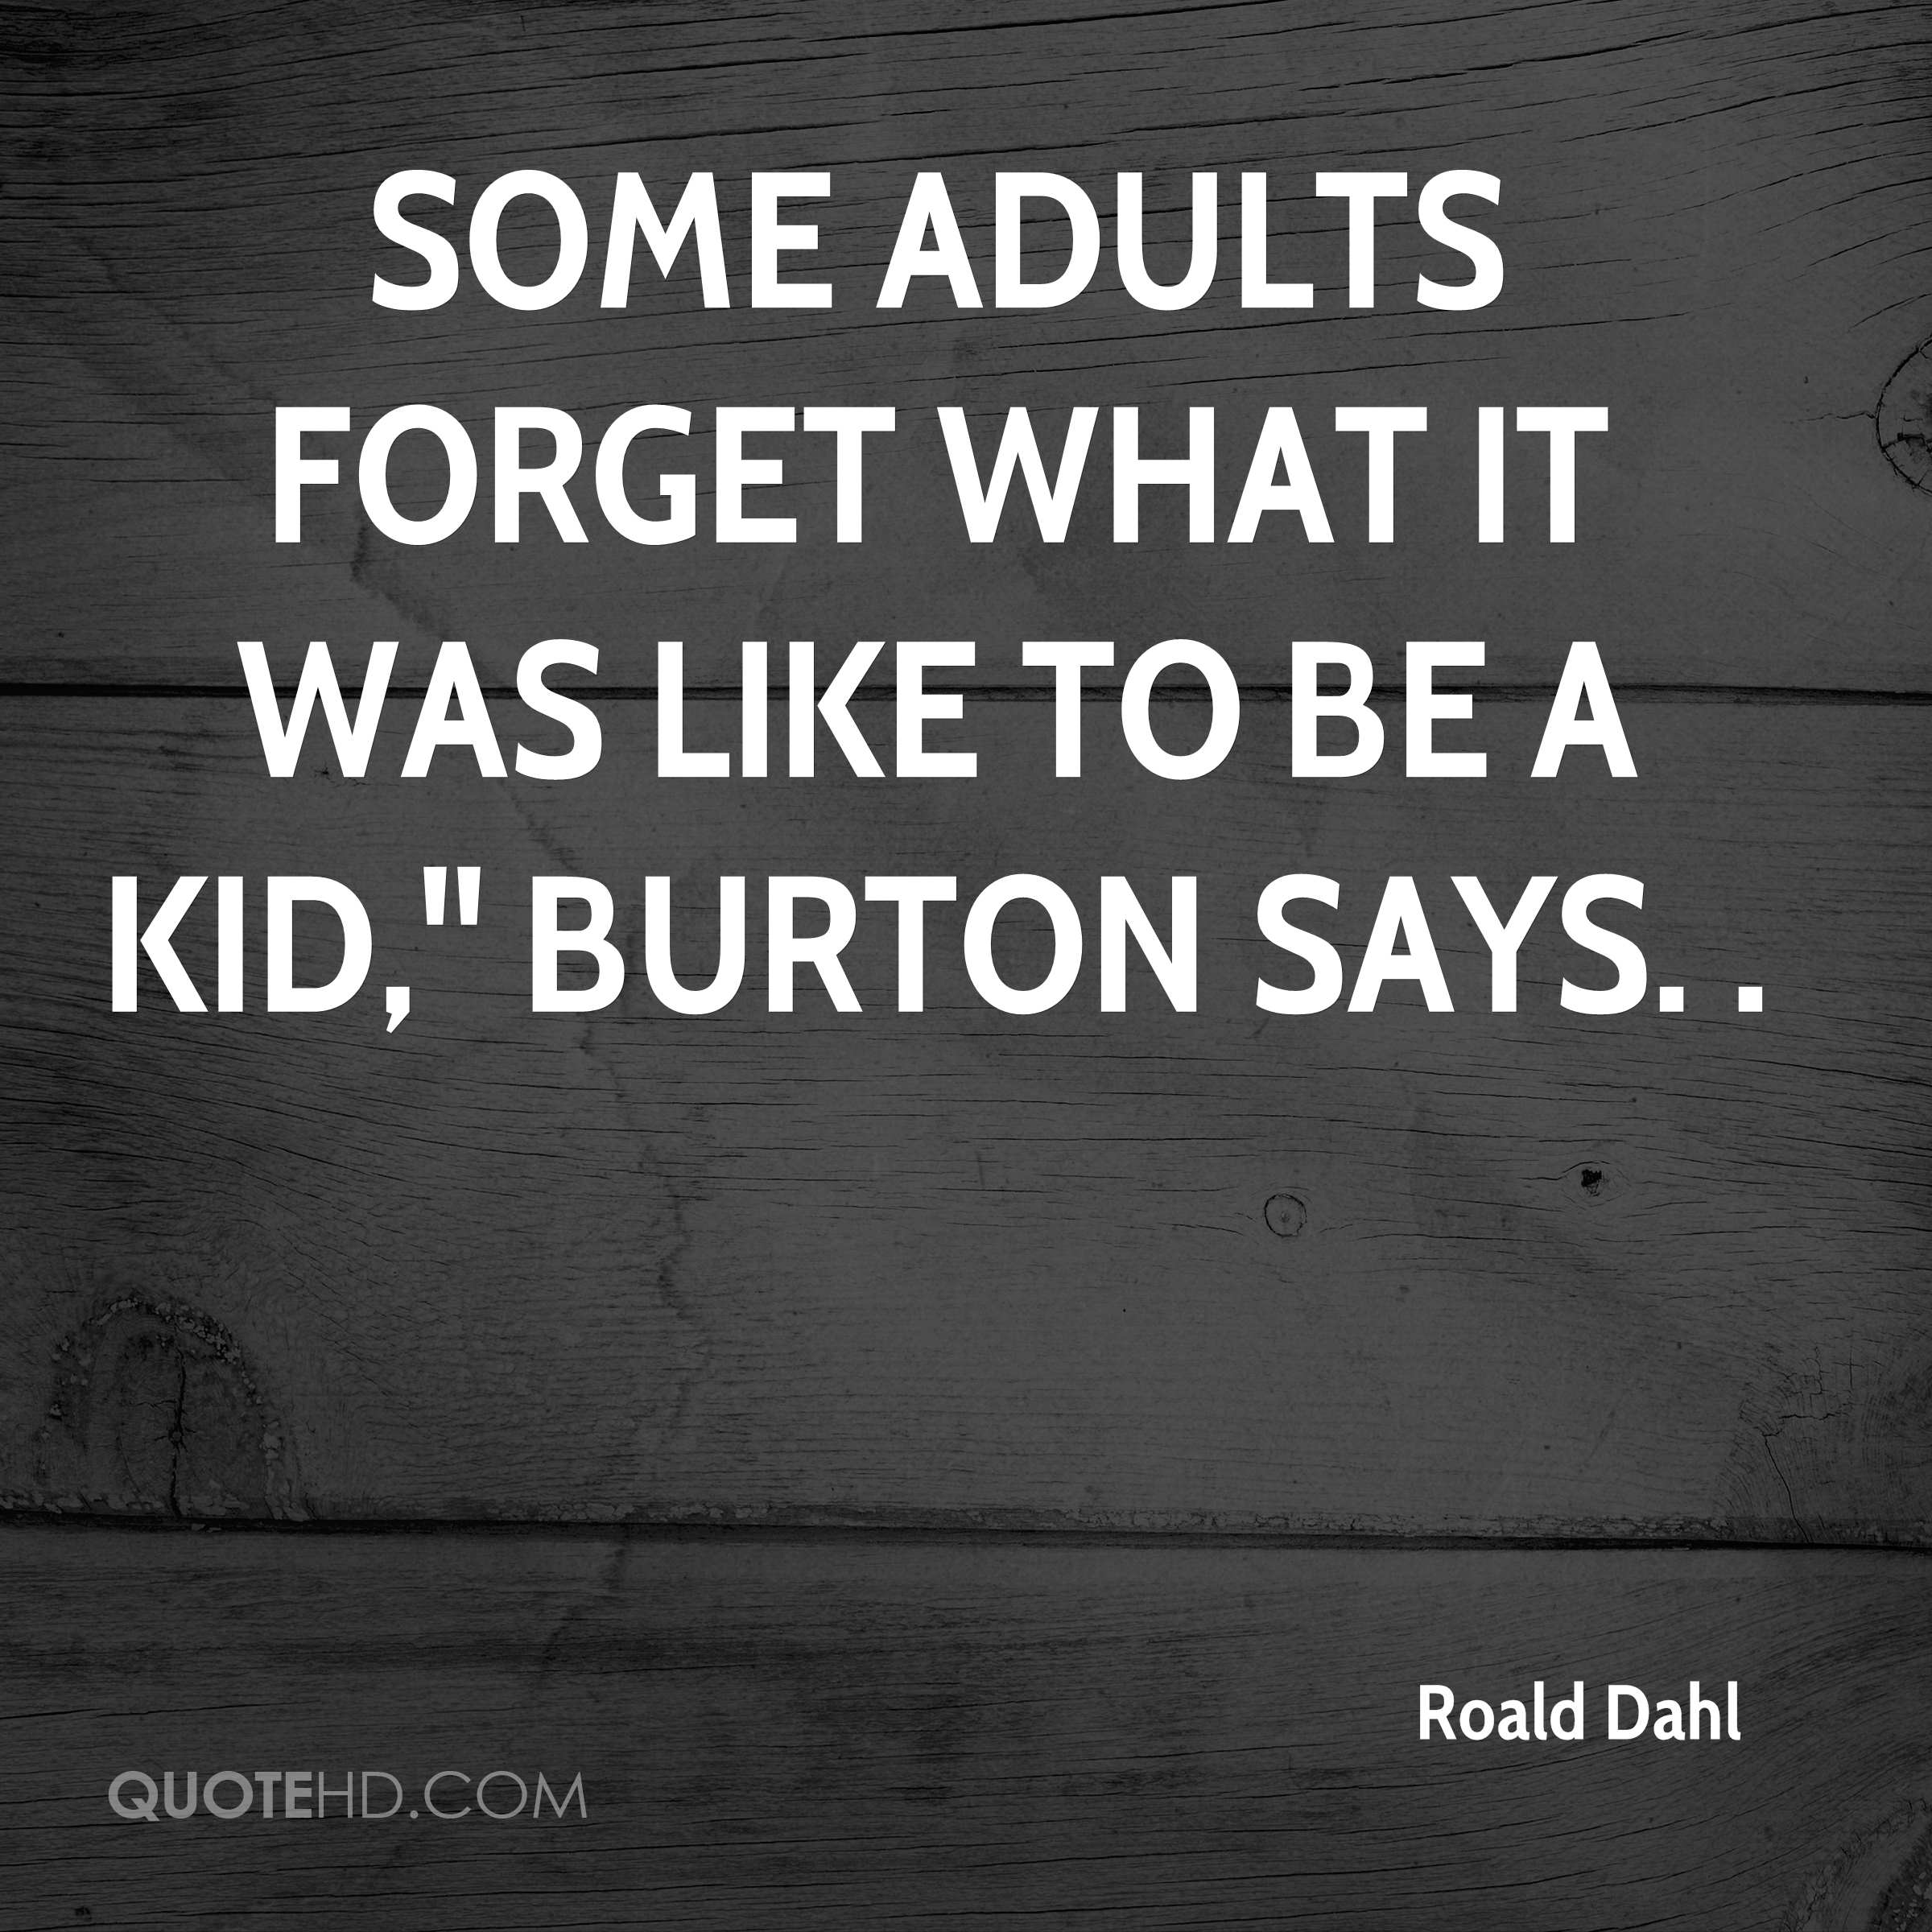 Some adults forget what it was like to be a kid,'' Burton says. .